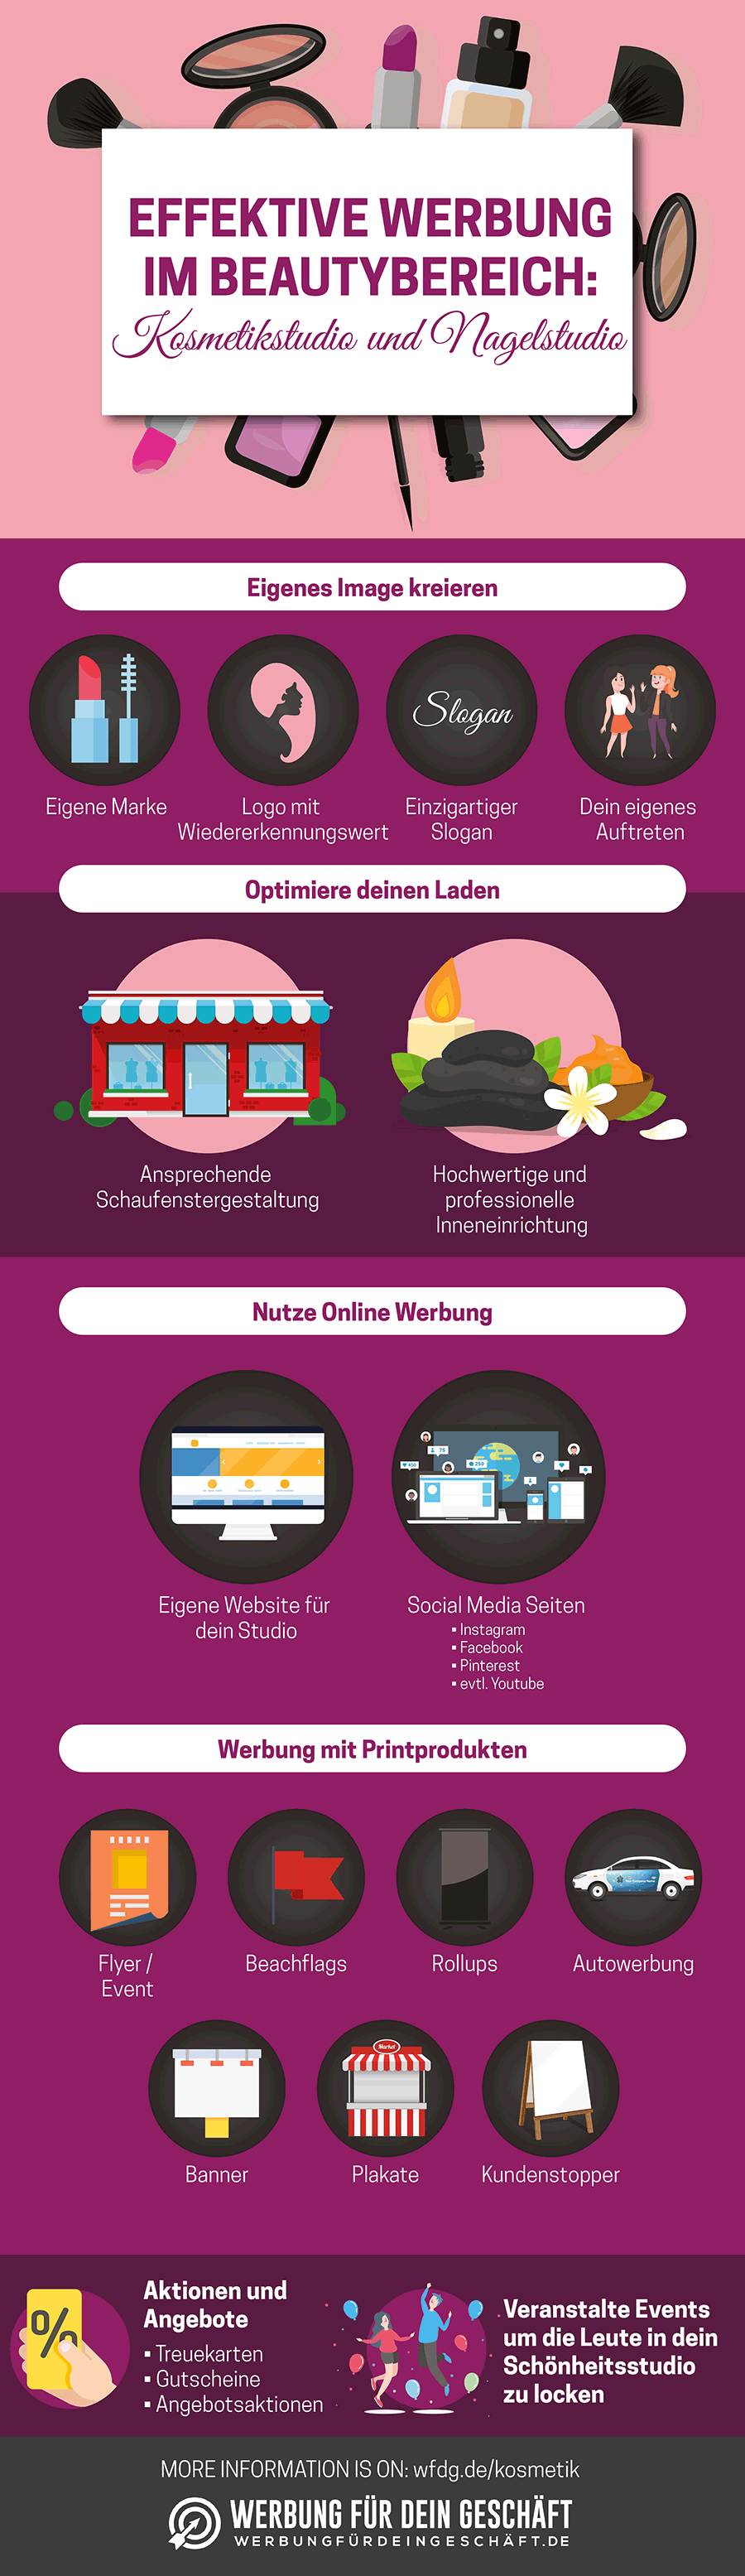 Infografik mit effektiven Marketing-Tipps im Beauty-Bereich